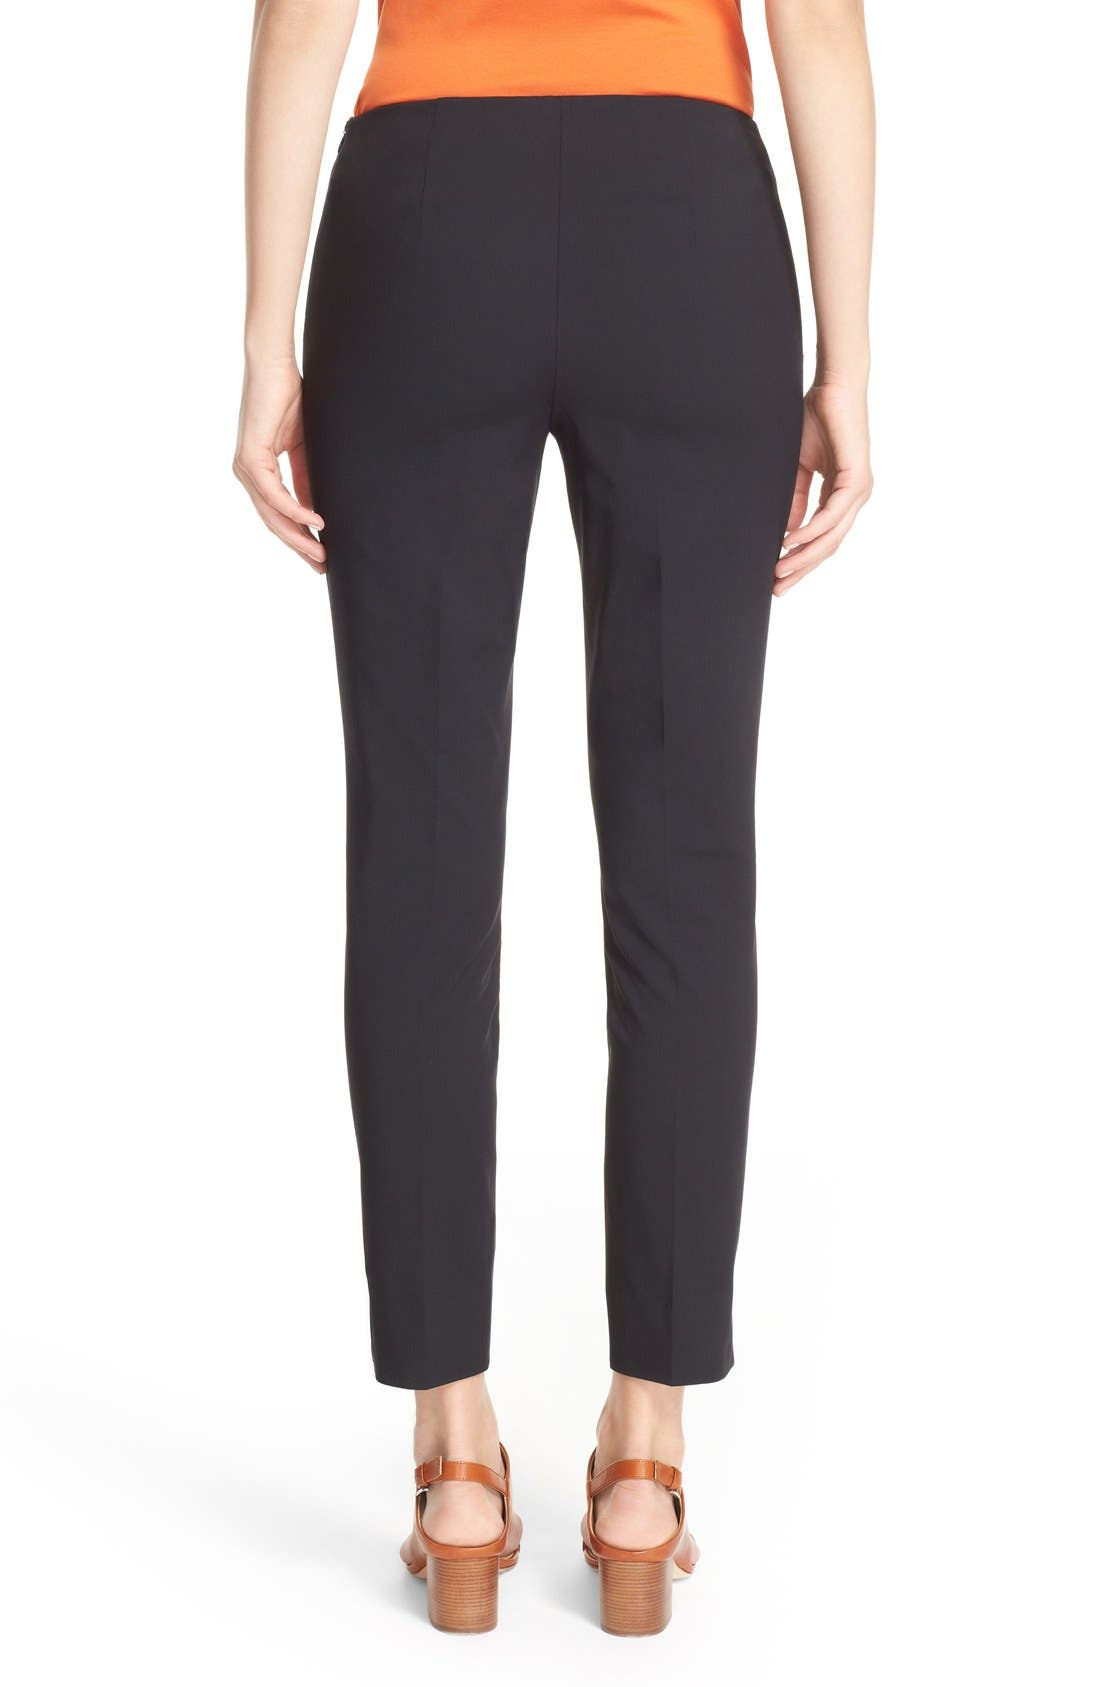 Alternate Image 2  - Lafayette 148 New York 'Stanton' Slim Leg Ankle Pants (Regular & Petite)